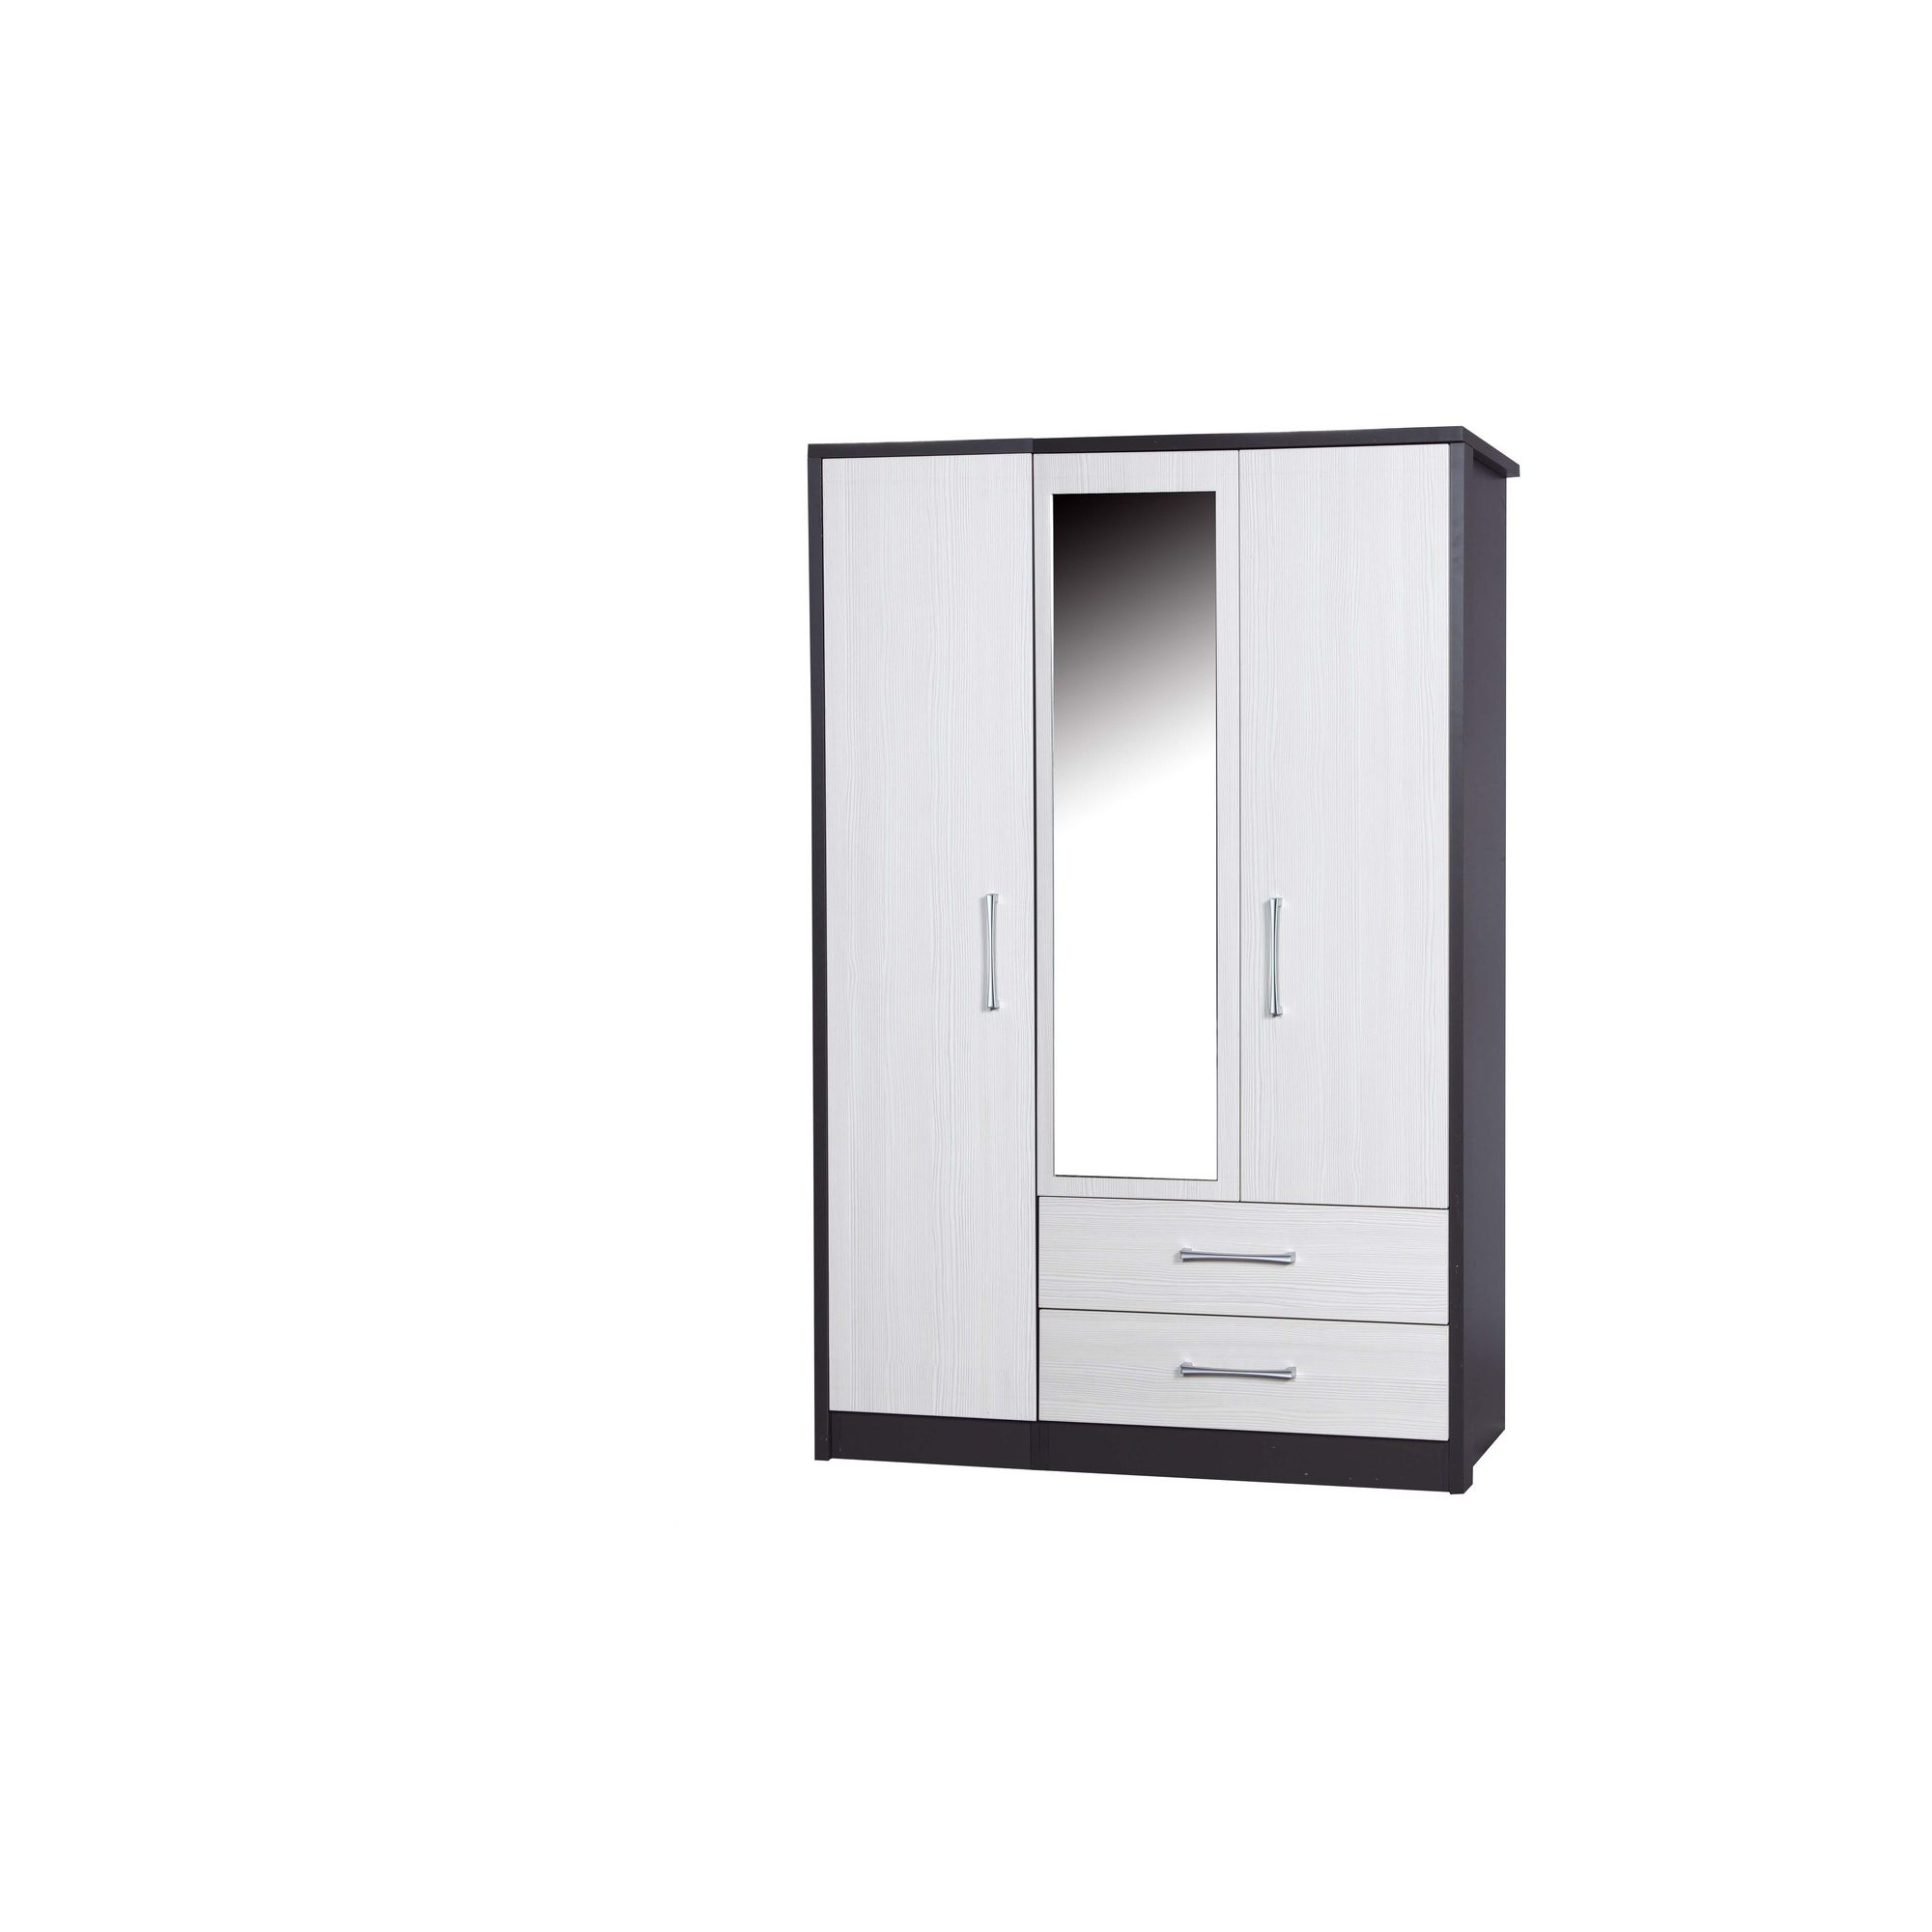 Alto Furniture Avola 3 Door Combi Wardrobe with Mirror - Grey Carcass With White Avola at Tesco Direct